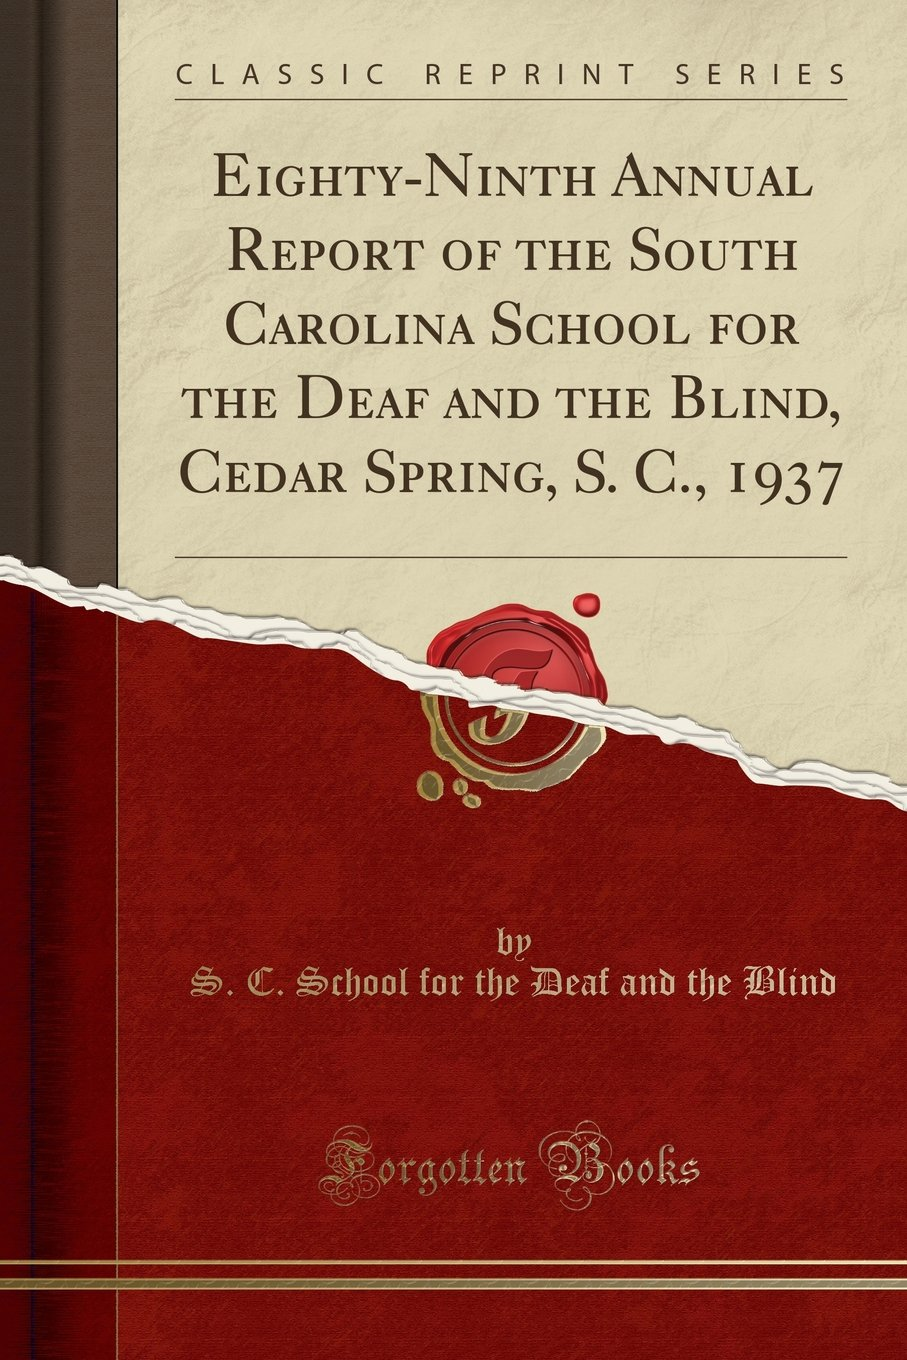 Eighty-Ninth Annual Report of the South Carolina School for the Deaf and the Blind, Cedar Spring, S. C., 1937 (Classic Reprint) pdf